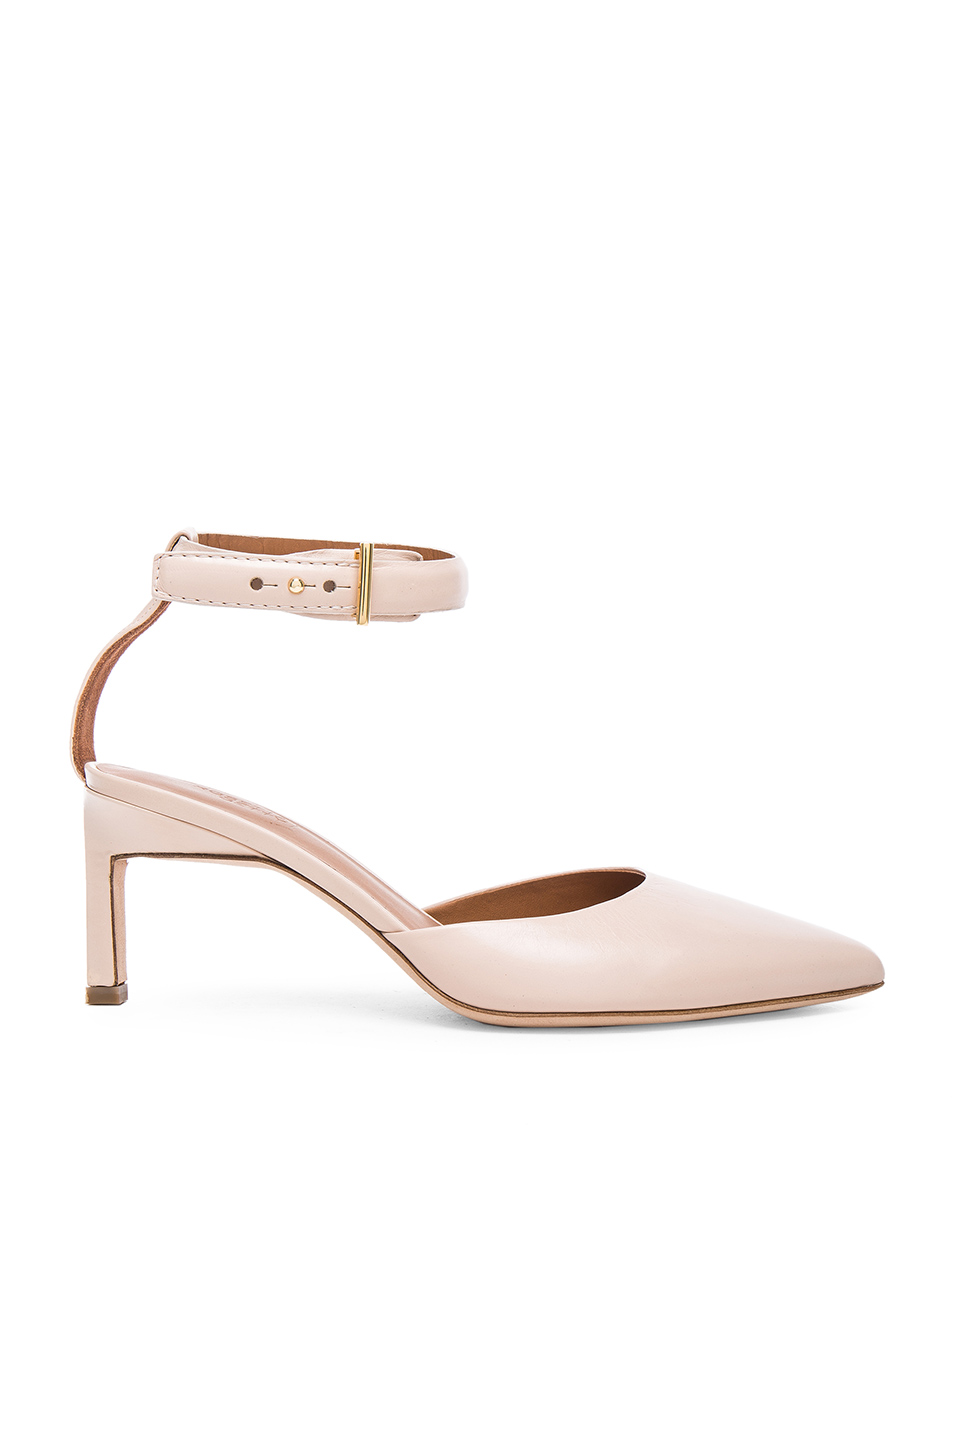 Rosetta Getty Leather Pointed Mid Heels in Neutrals